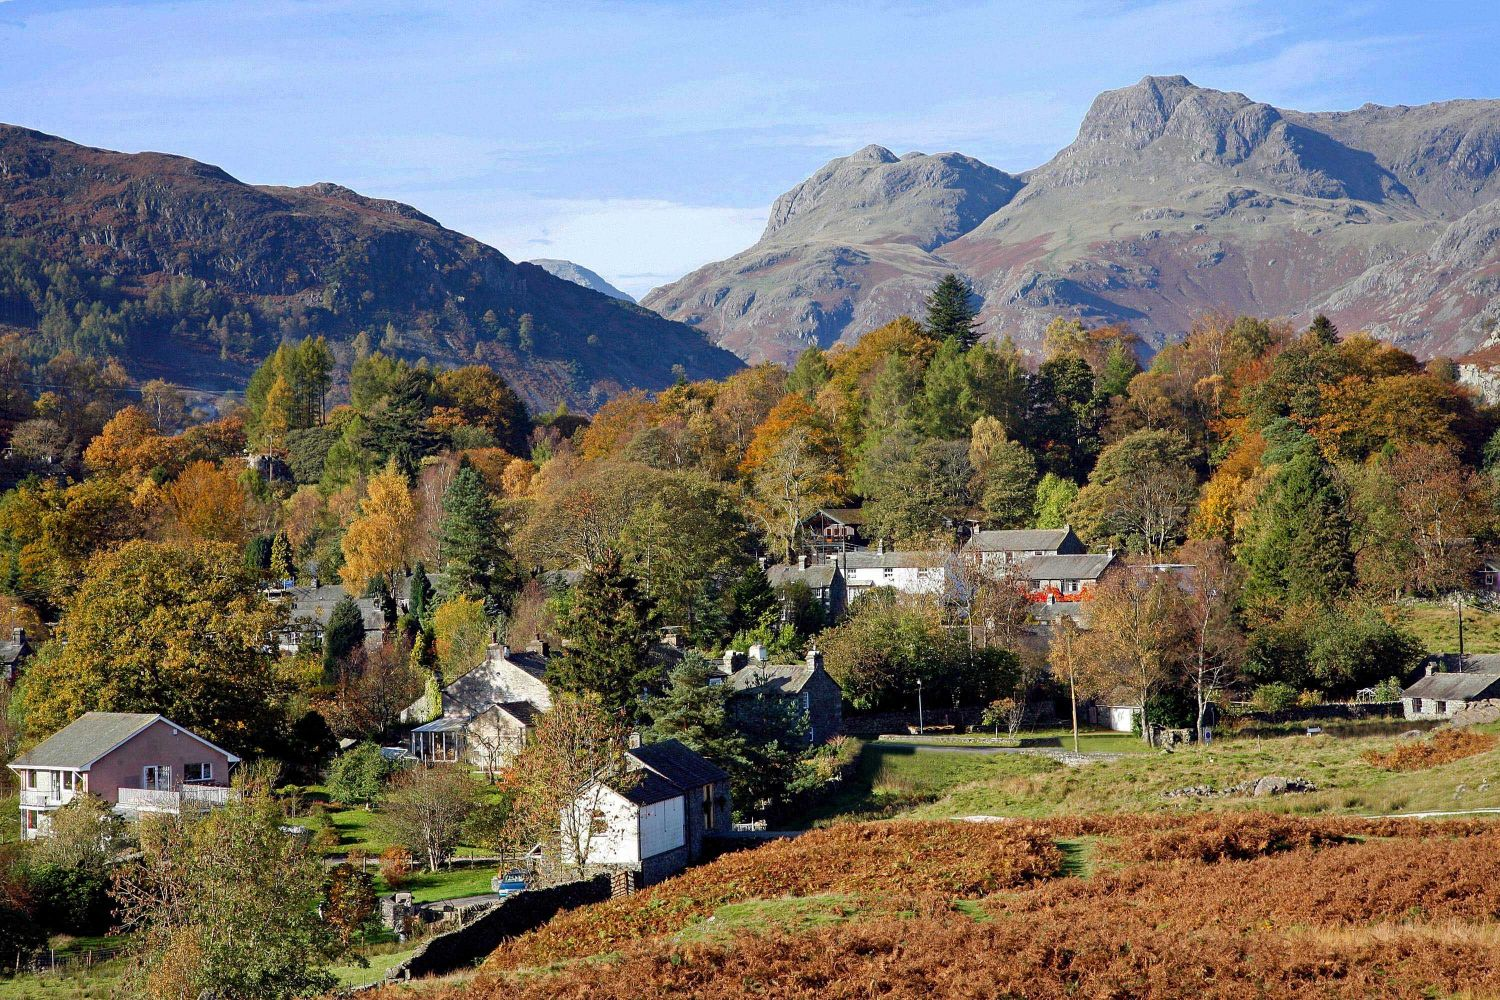 Elterwater Village and the Langdale Pikes in autumn